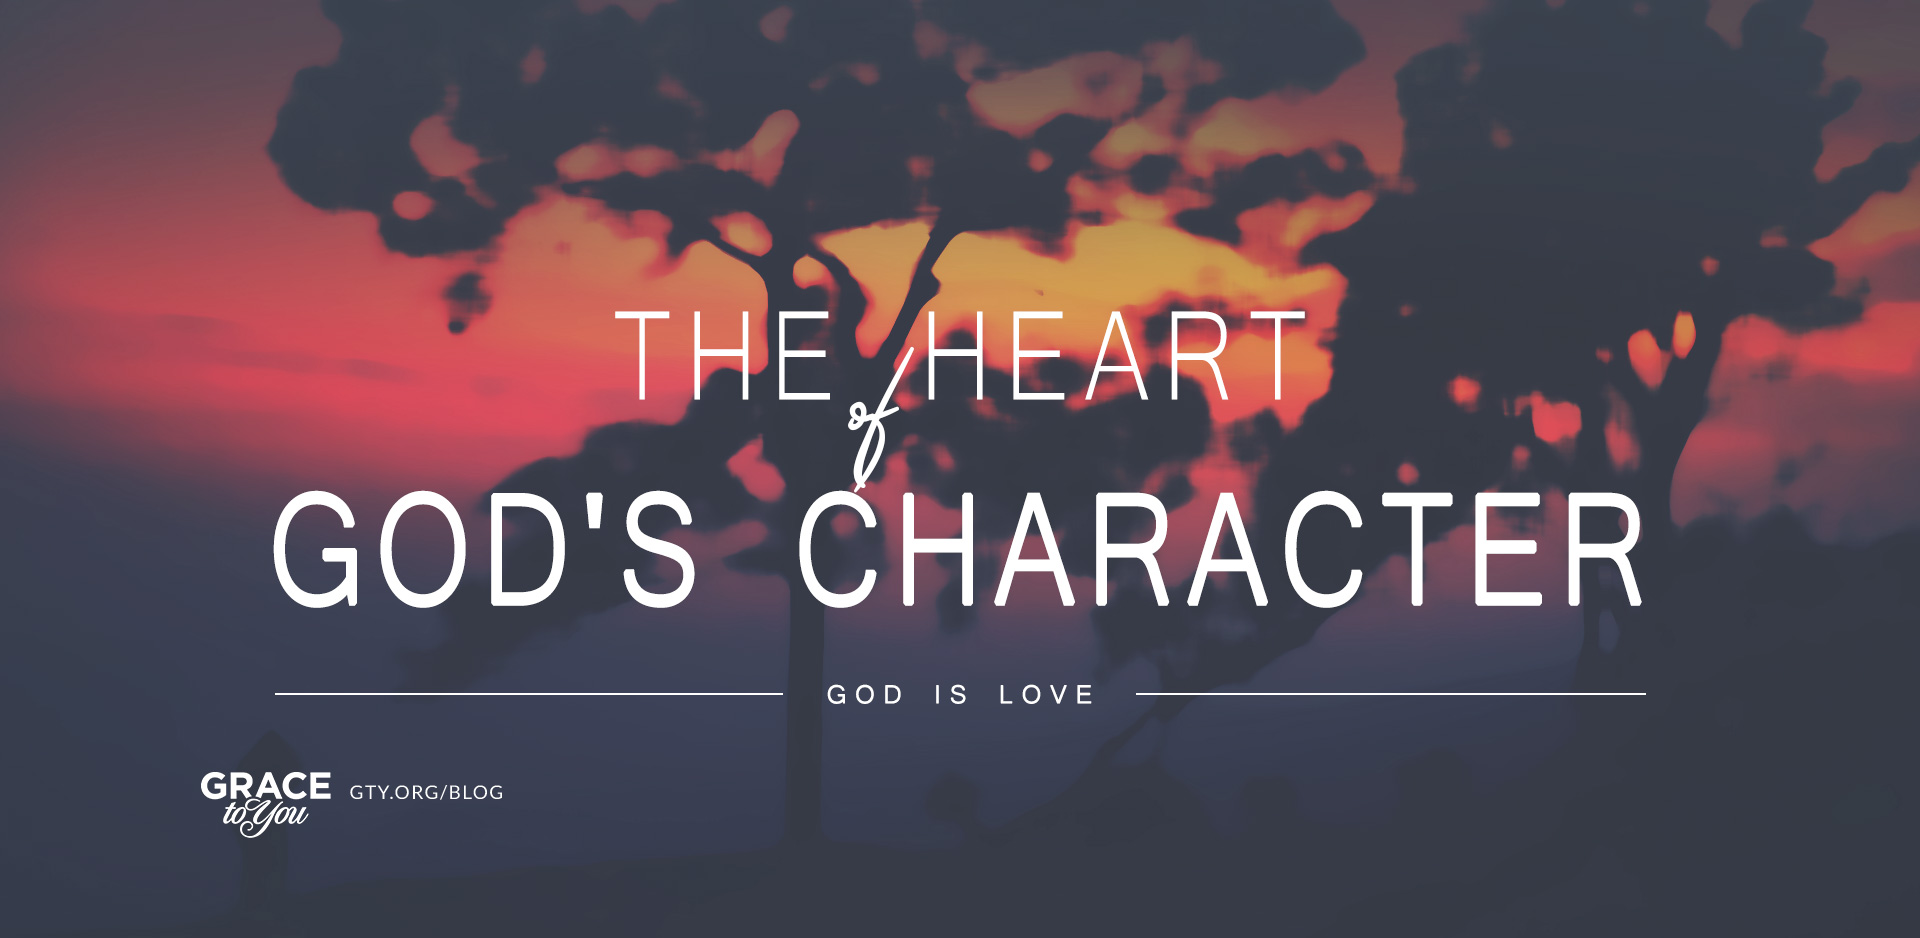 The Heart of God's Character